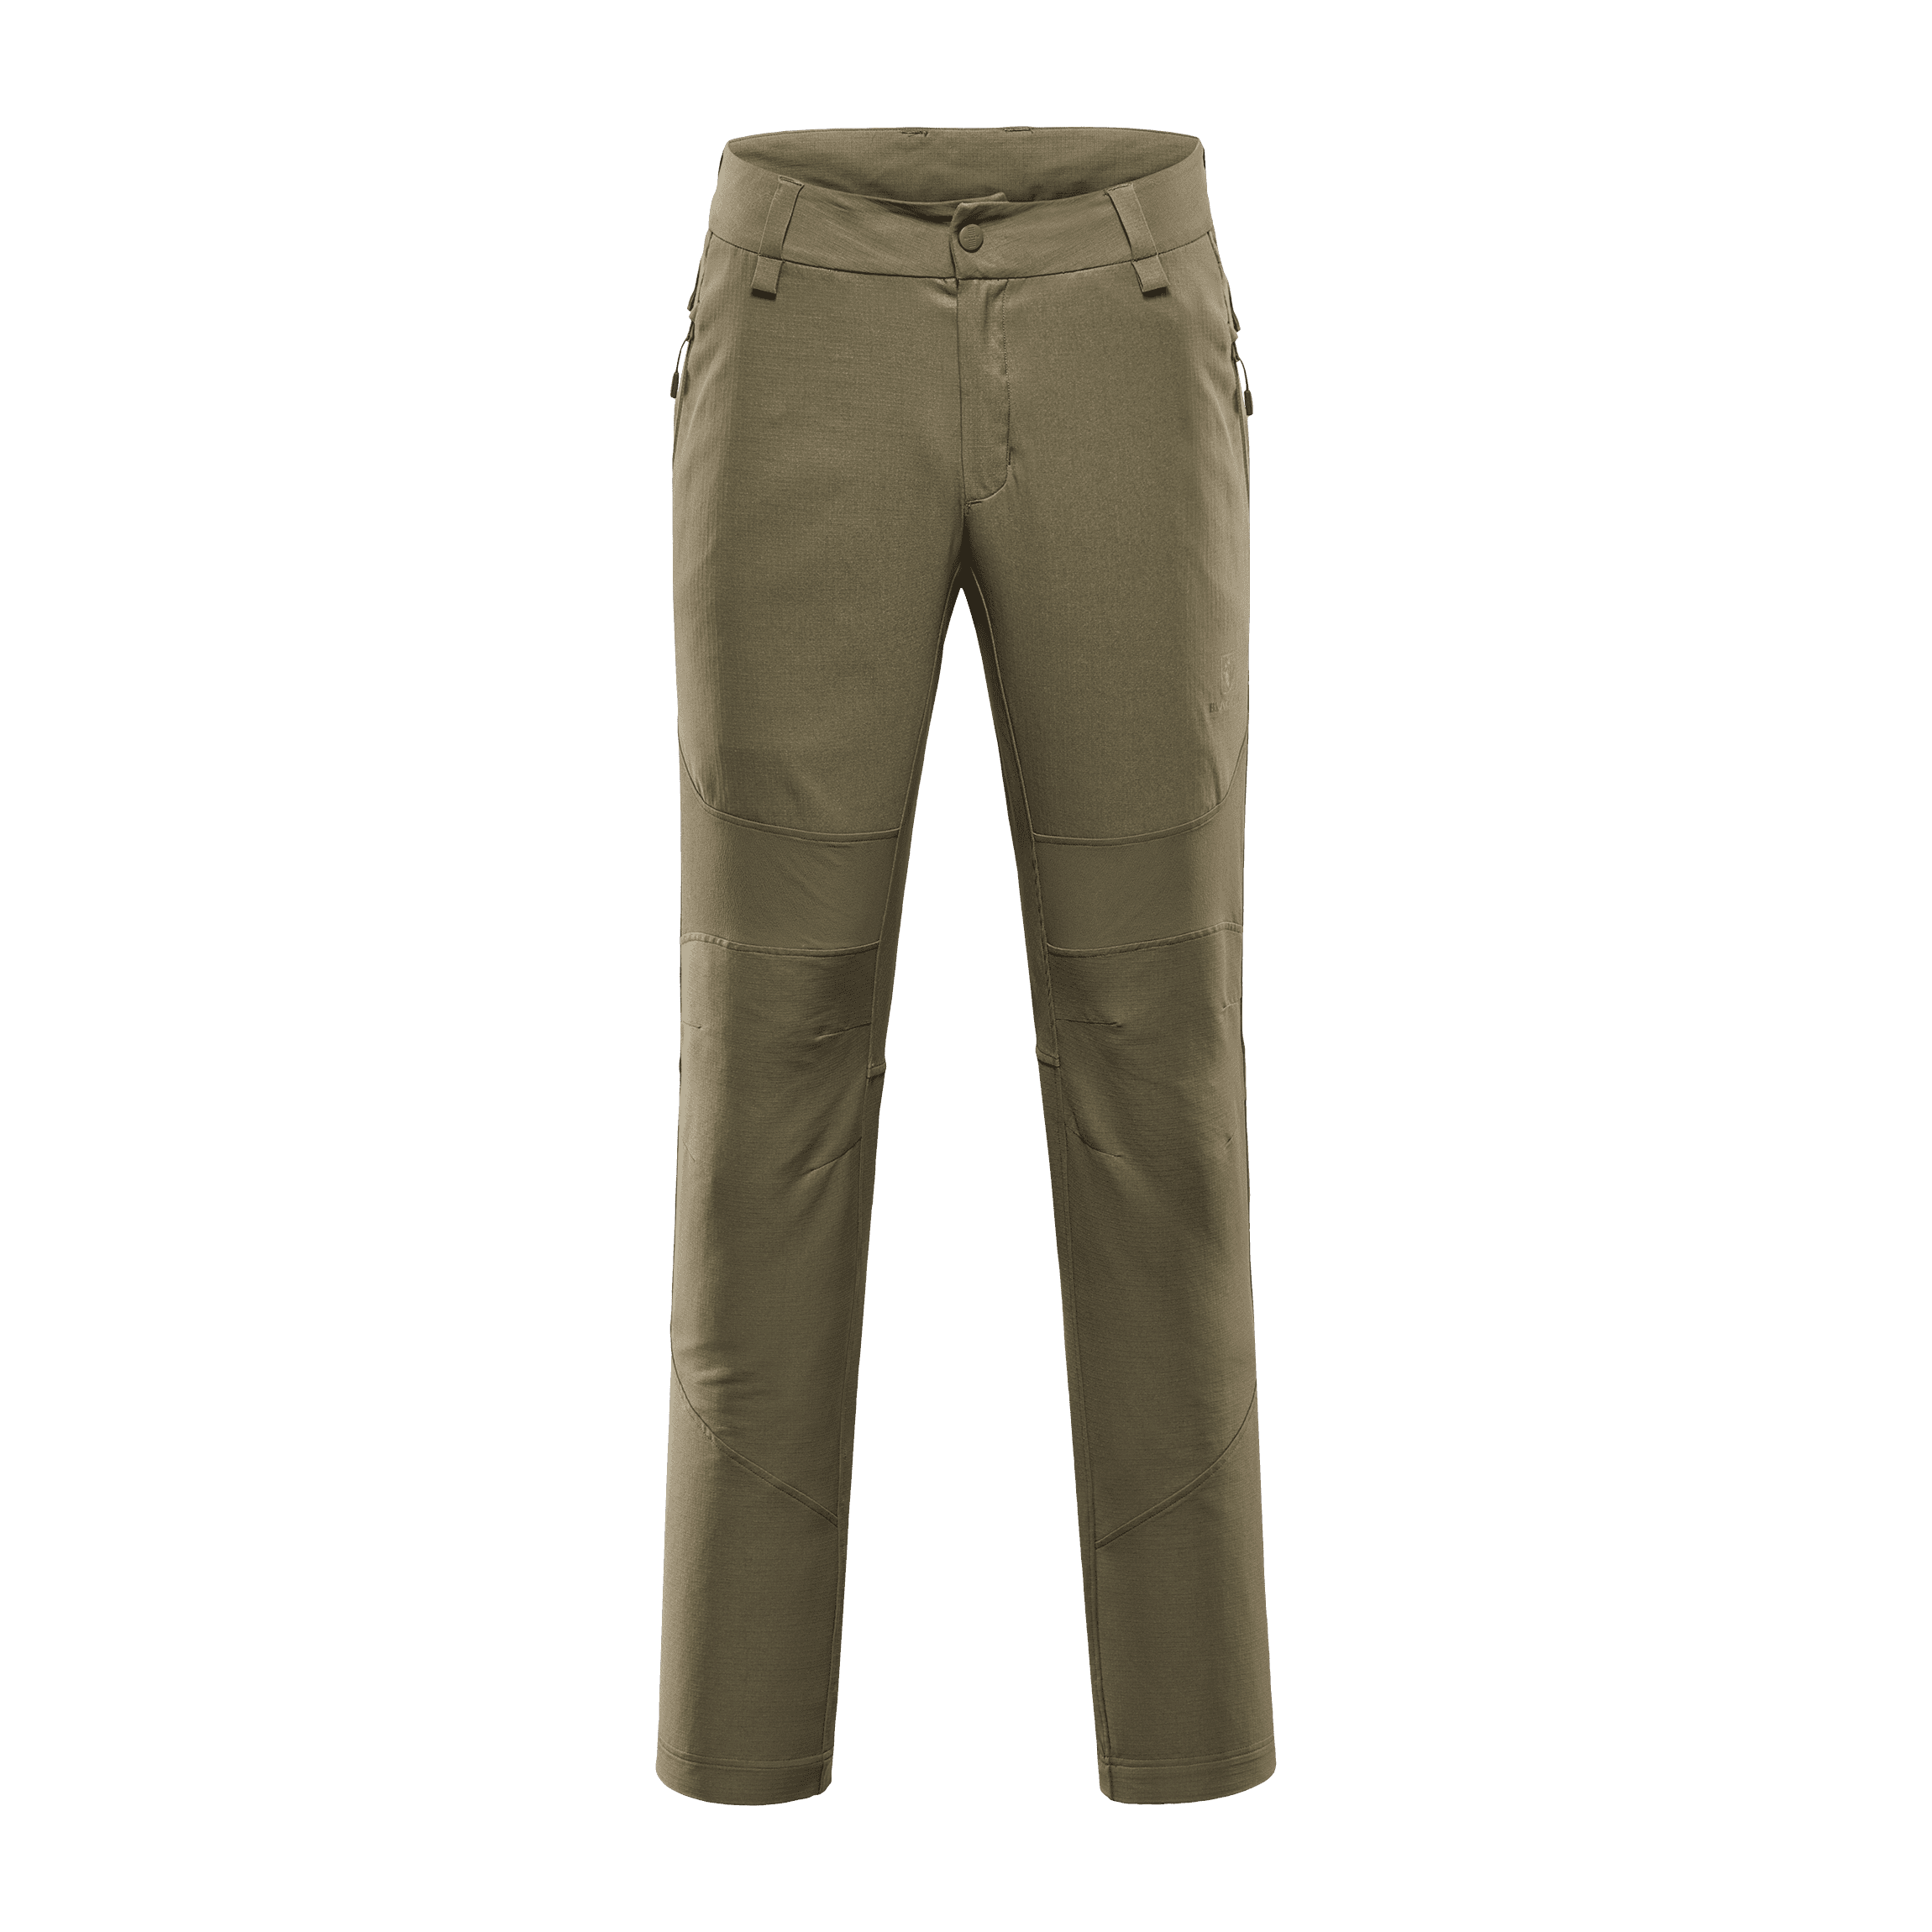 CANCHIM PANTS